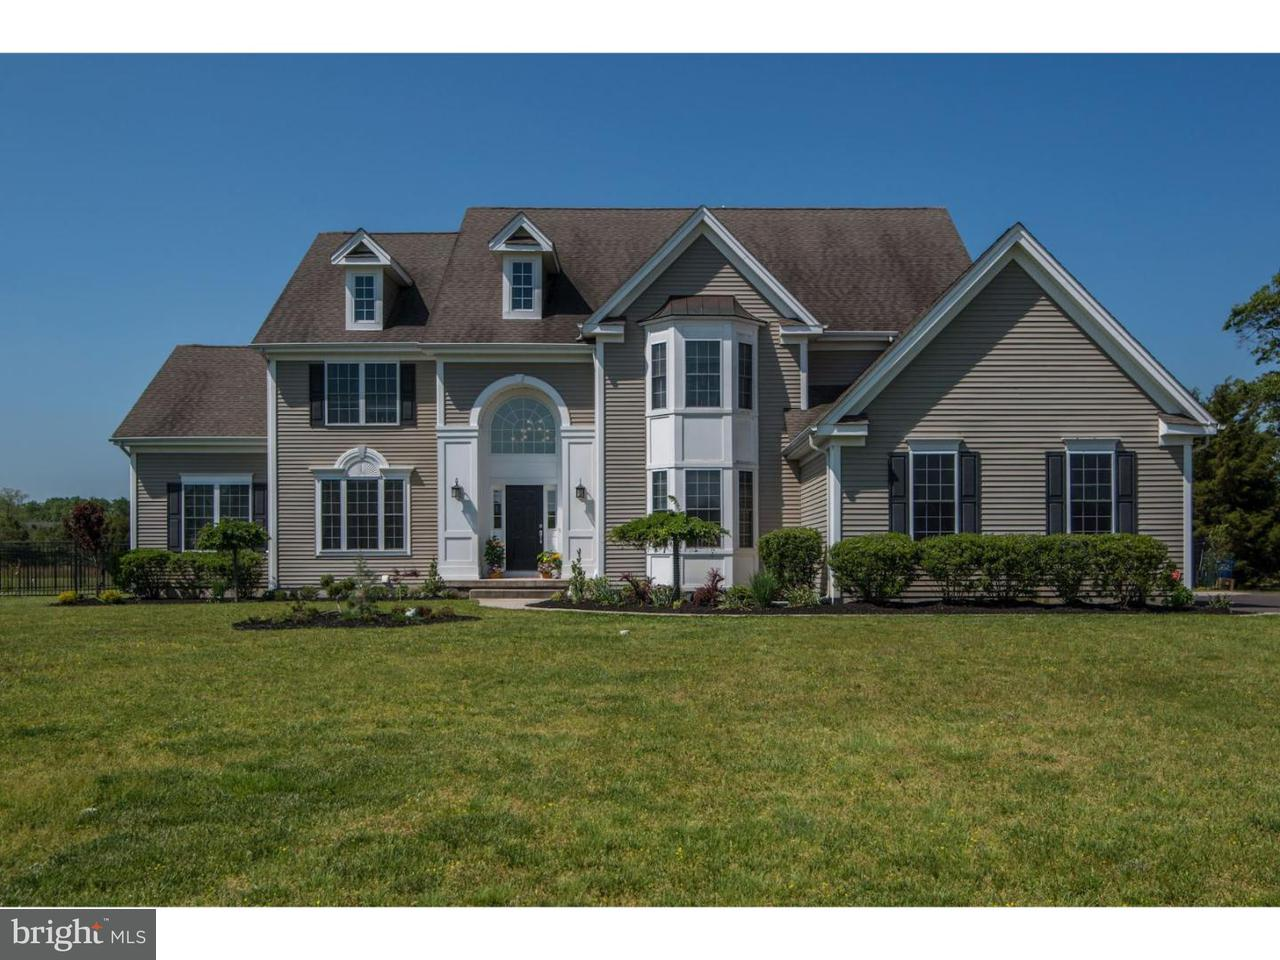 Single Family Home for Rent at 34 OXFORD Circle Southampton, New Jersey 08088 United States